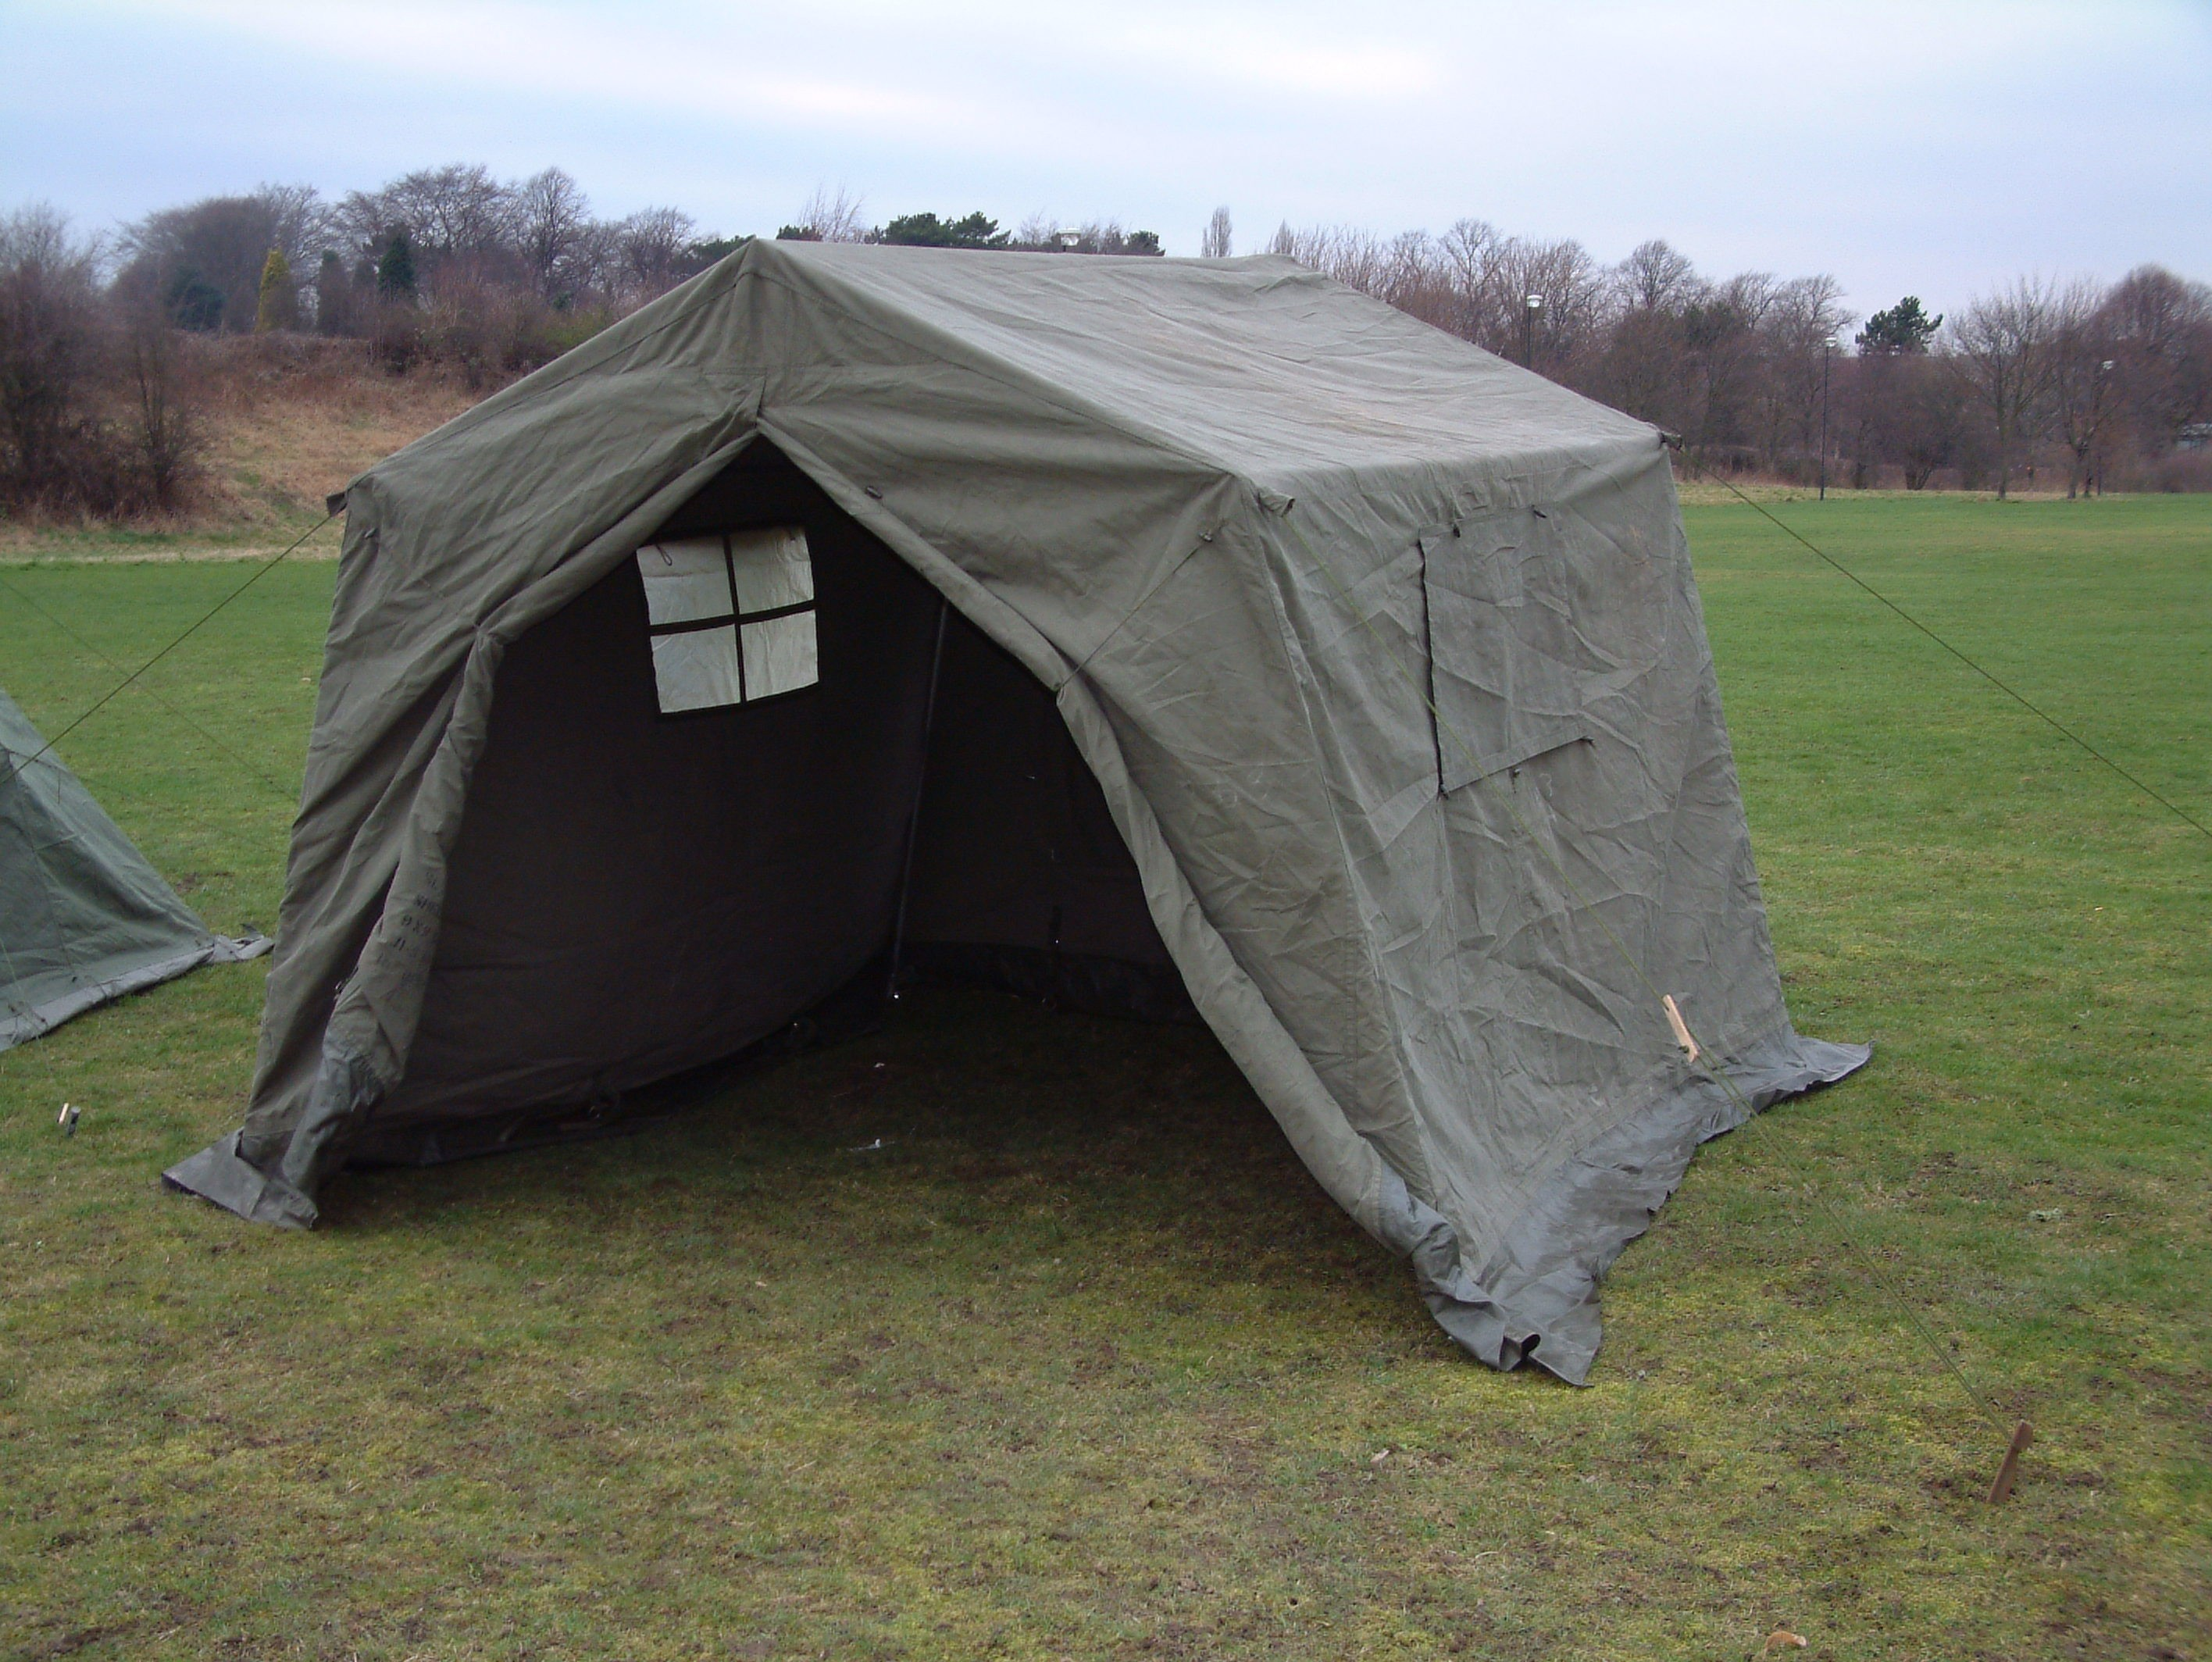 9 x 9 Ex British Army Frame Tent - Unissued : ex military tents - memphite.com